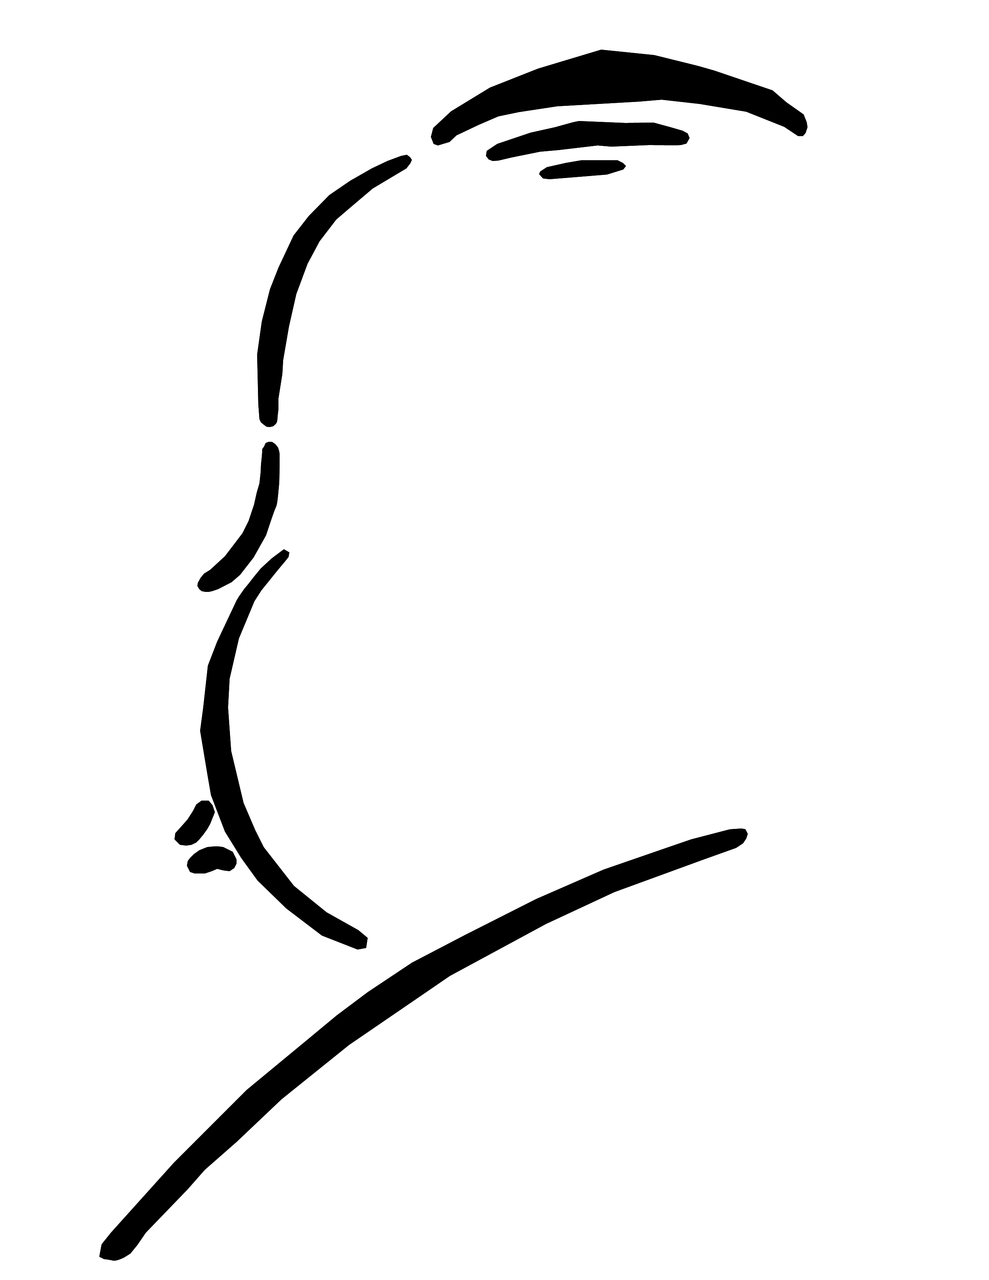 Alfred hitchcock clipart.